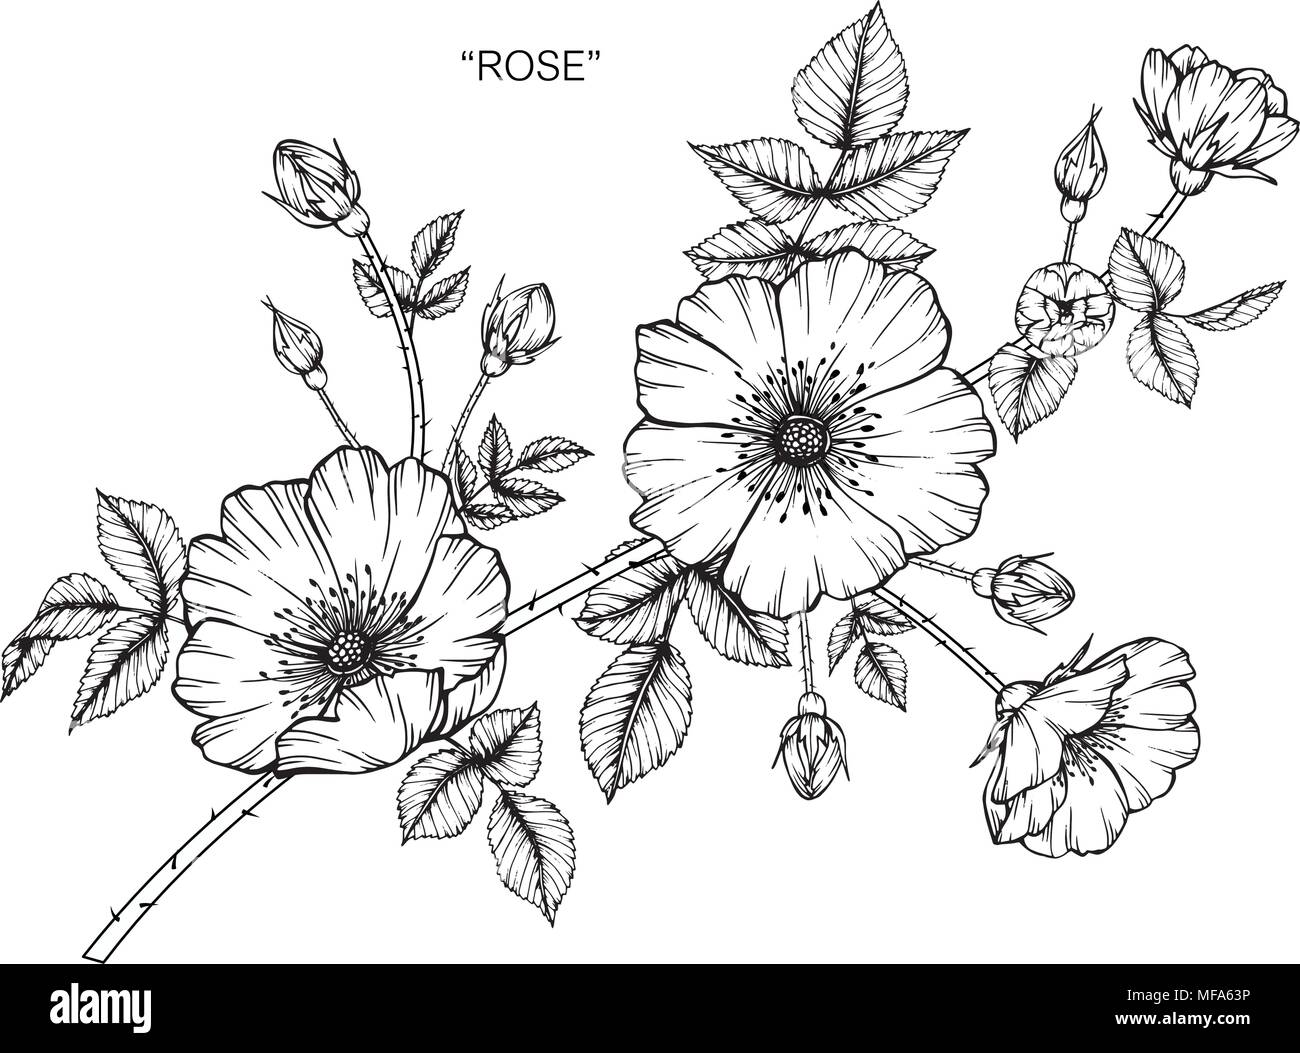 Rose flower drawing illustration black and white with line art on rose flower drawing illustration black and white with line art on white backgrounds mightylinksfo